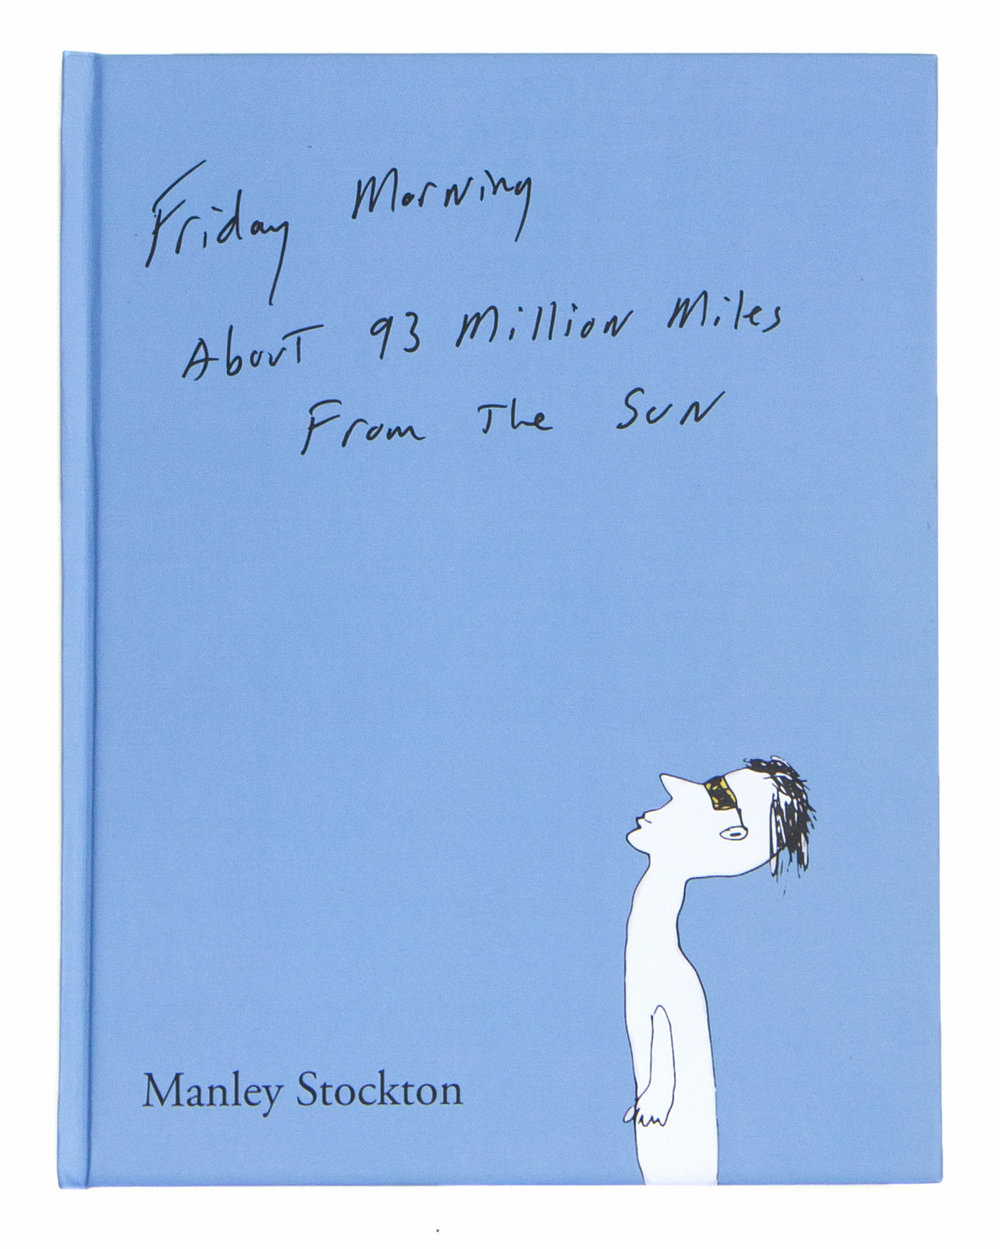 friday morning about 93 million miles from the sun elizabeth stockton